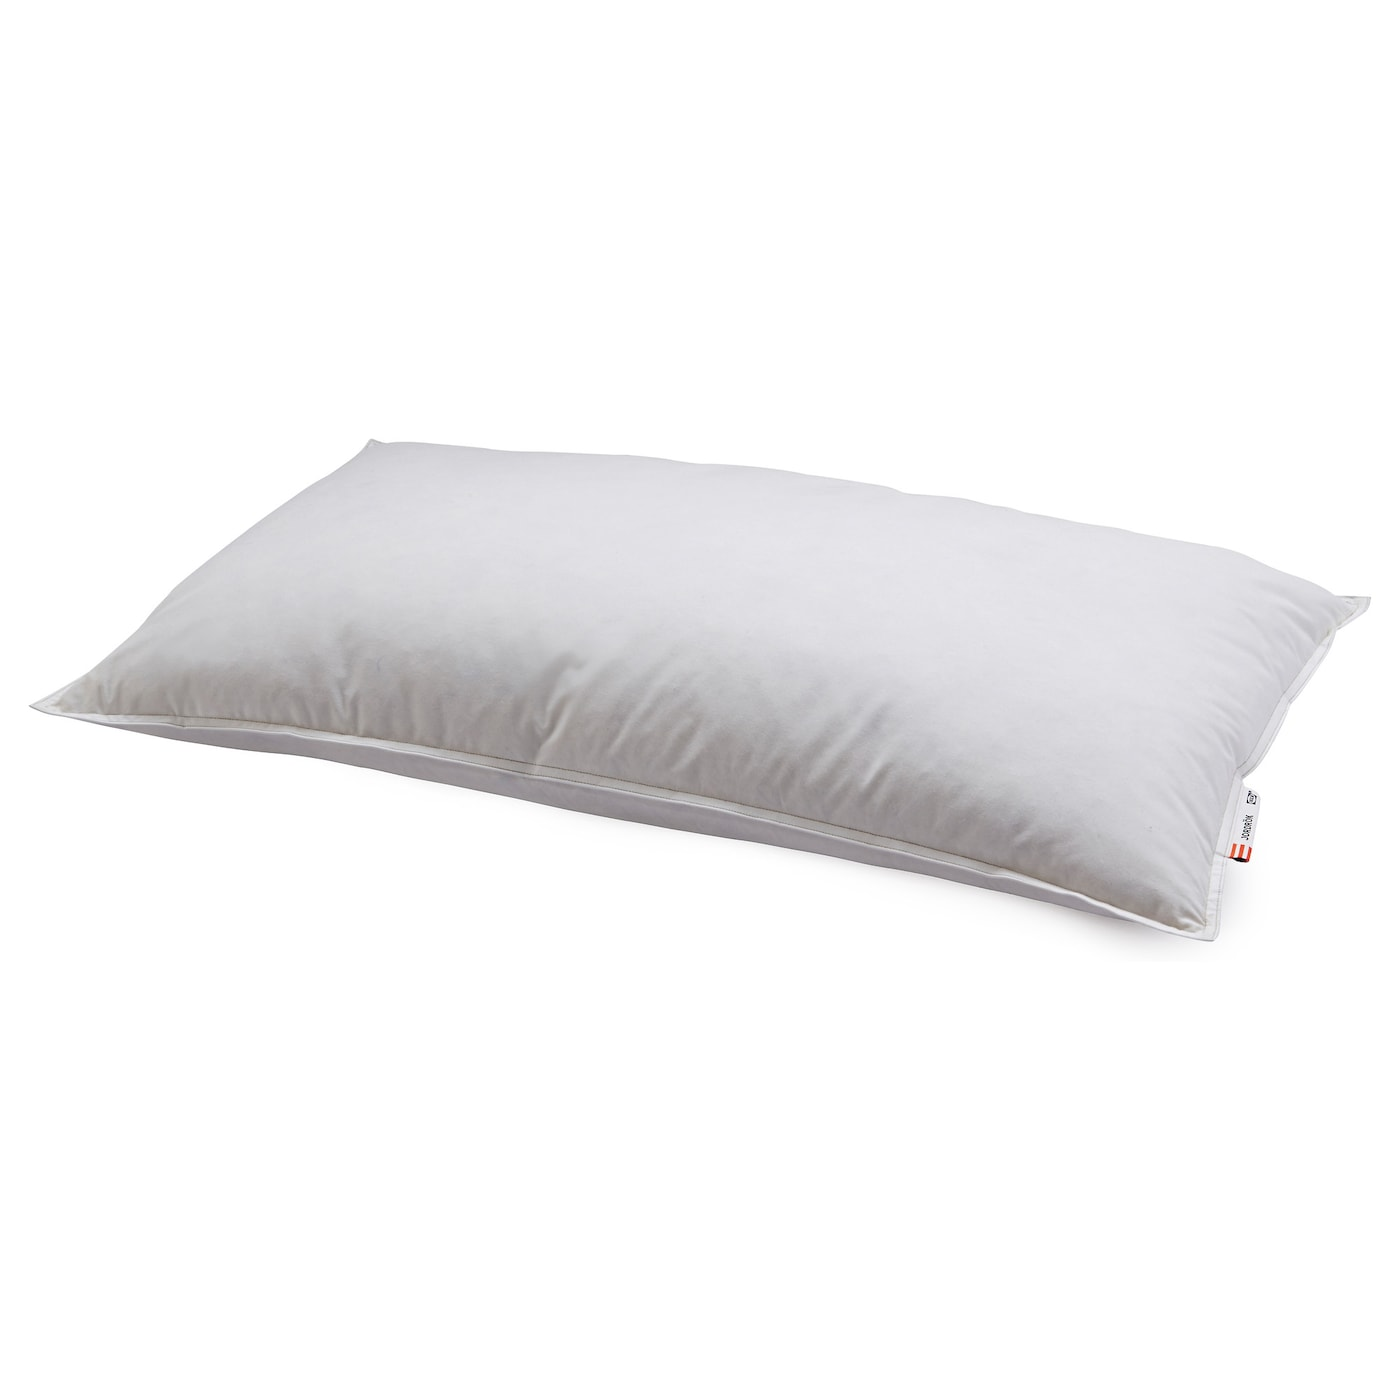 IKEA JORDRÖK pillow, firmer A firm pillow in soft cotton, filled with duck down and feathers.